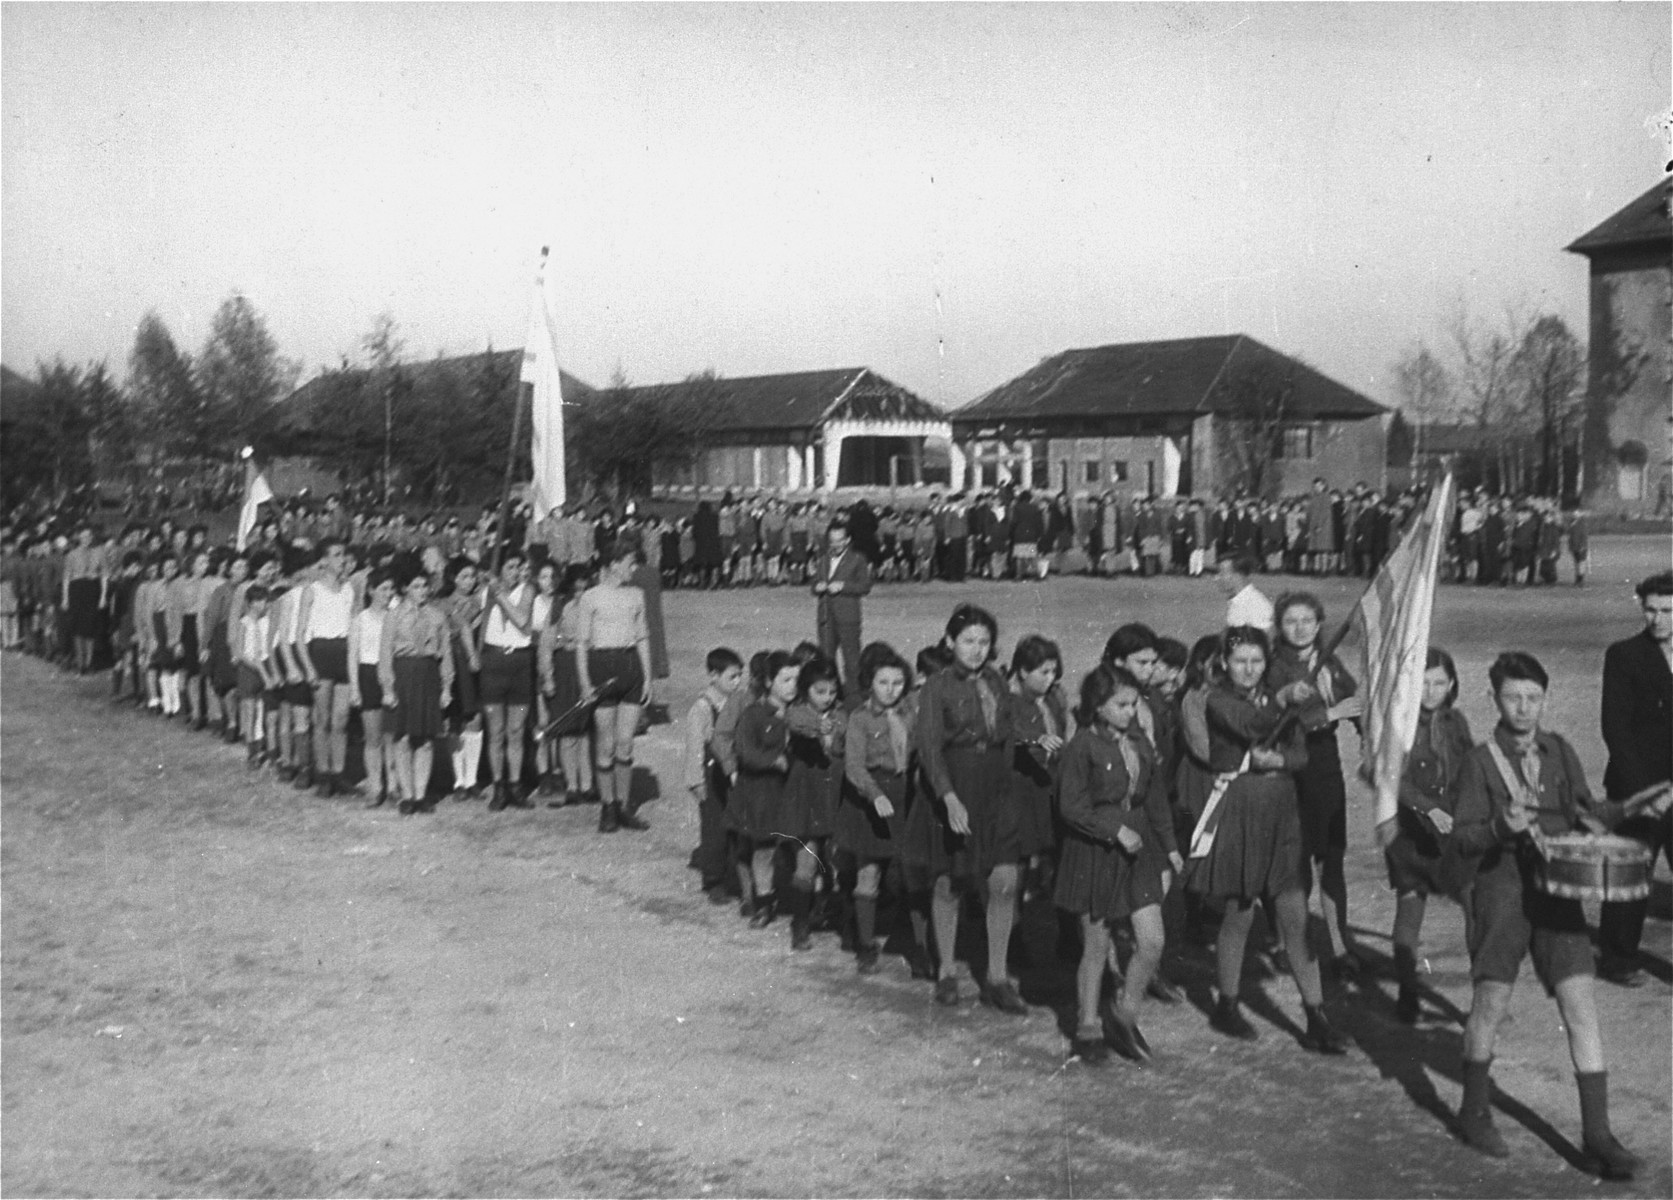 Zionist youth parade with flags around the central yard in the Landsberg displaced persons'camp.